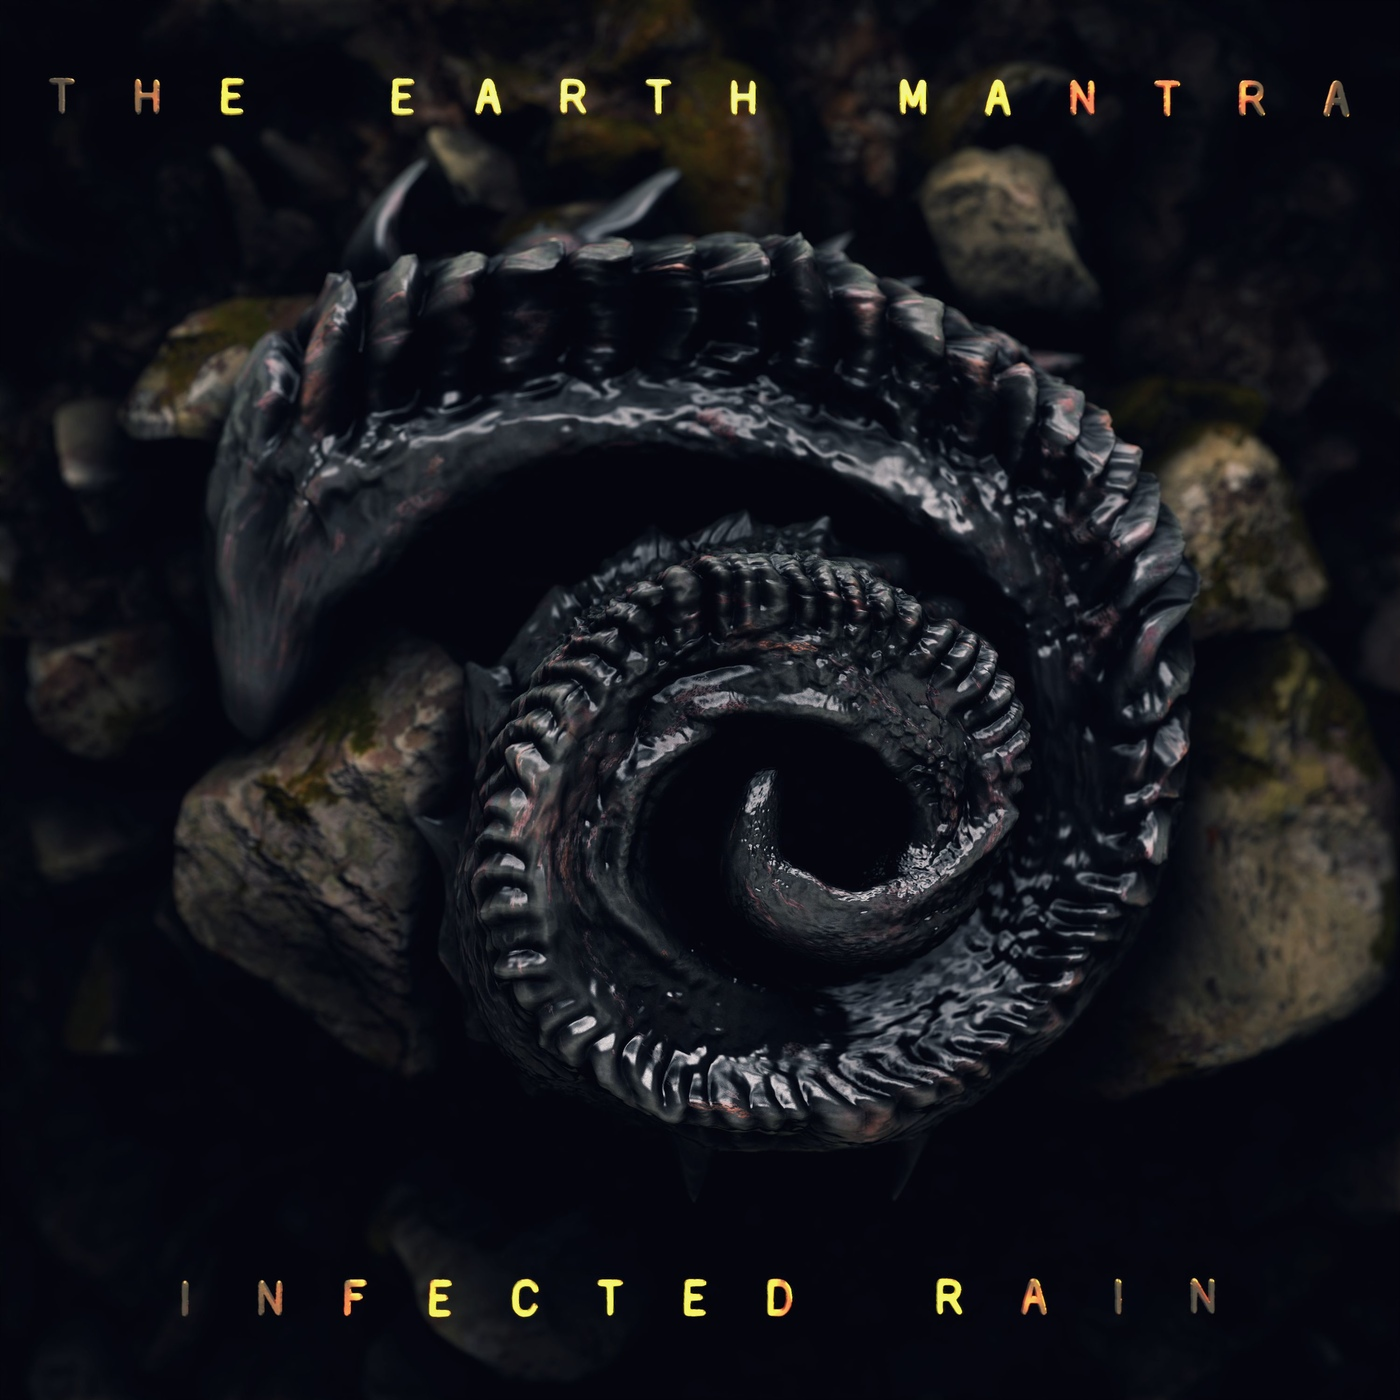 Infected Rain - The Earth Mantra [Single] (2019)